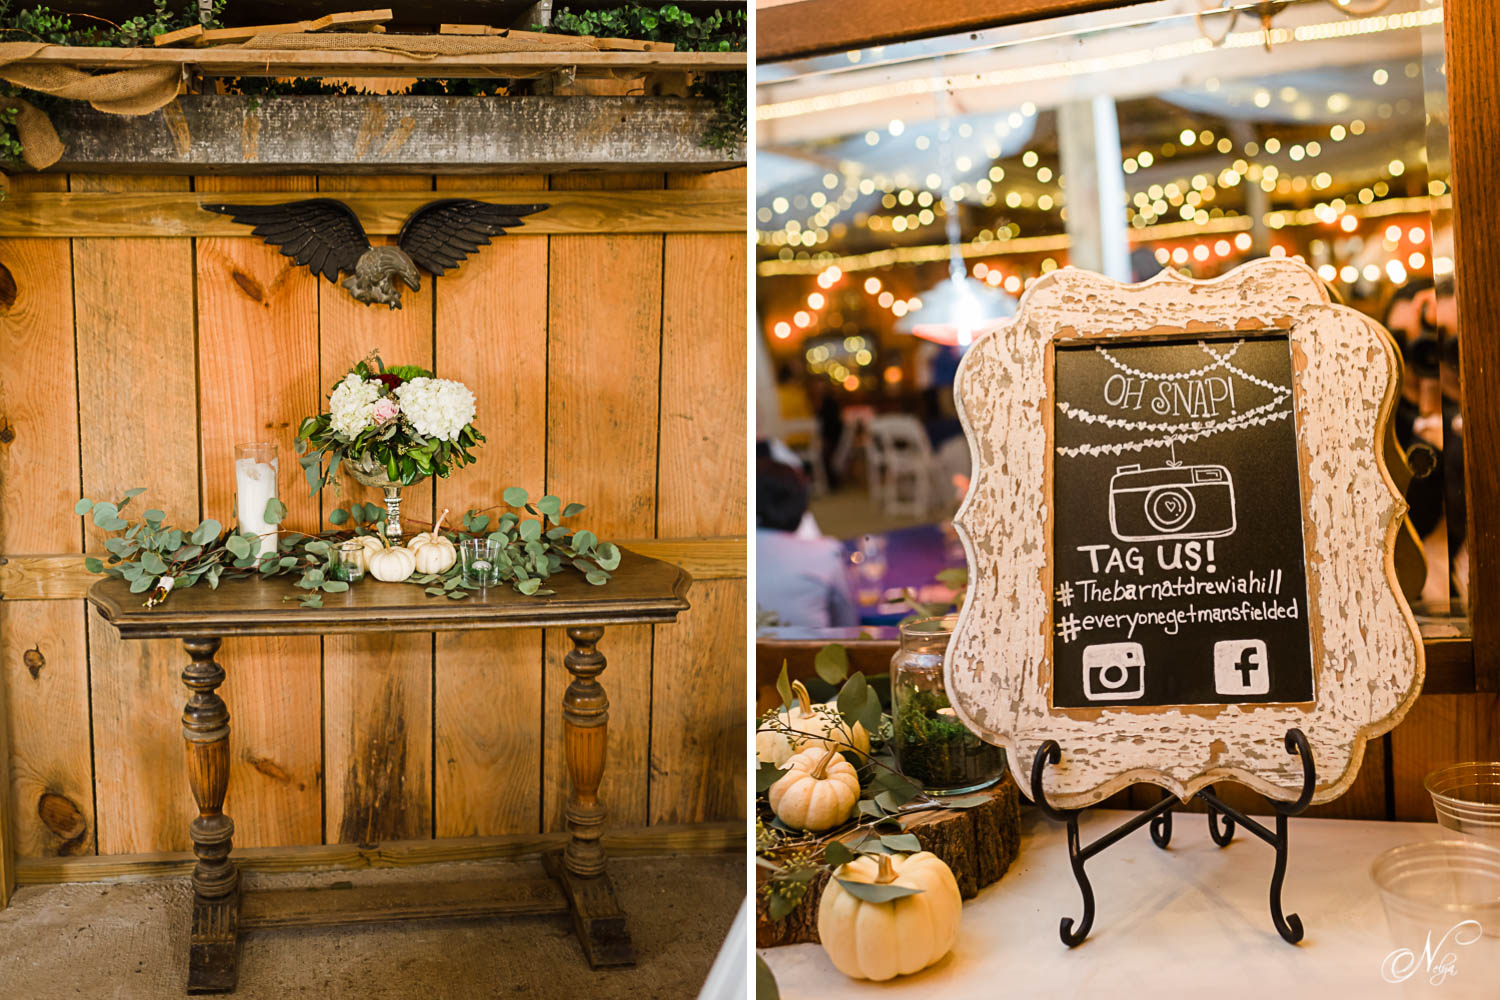 rustic barn decor at the barn at Drewia Hill. And a cute framed chalk board with the couple's instagam wedding hashtag